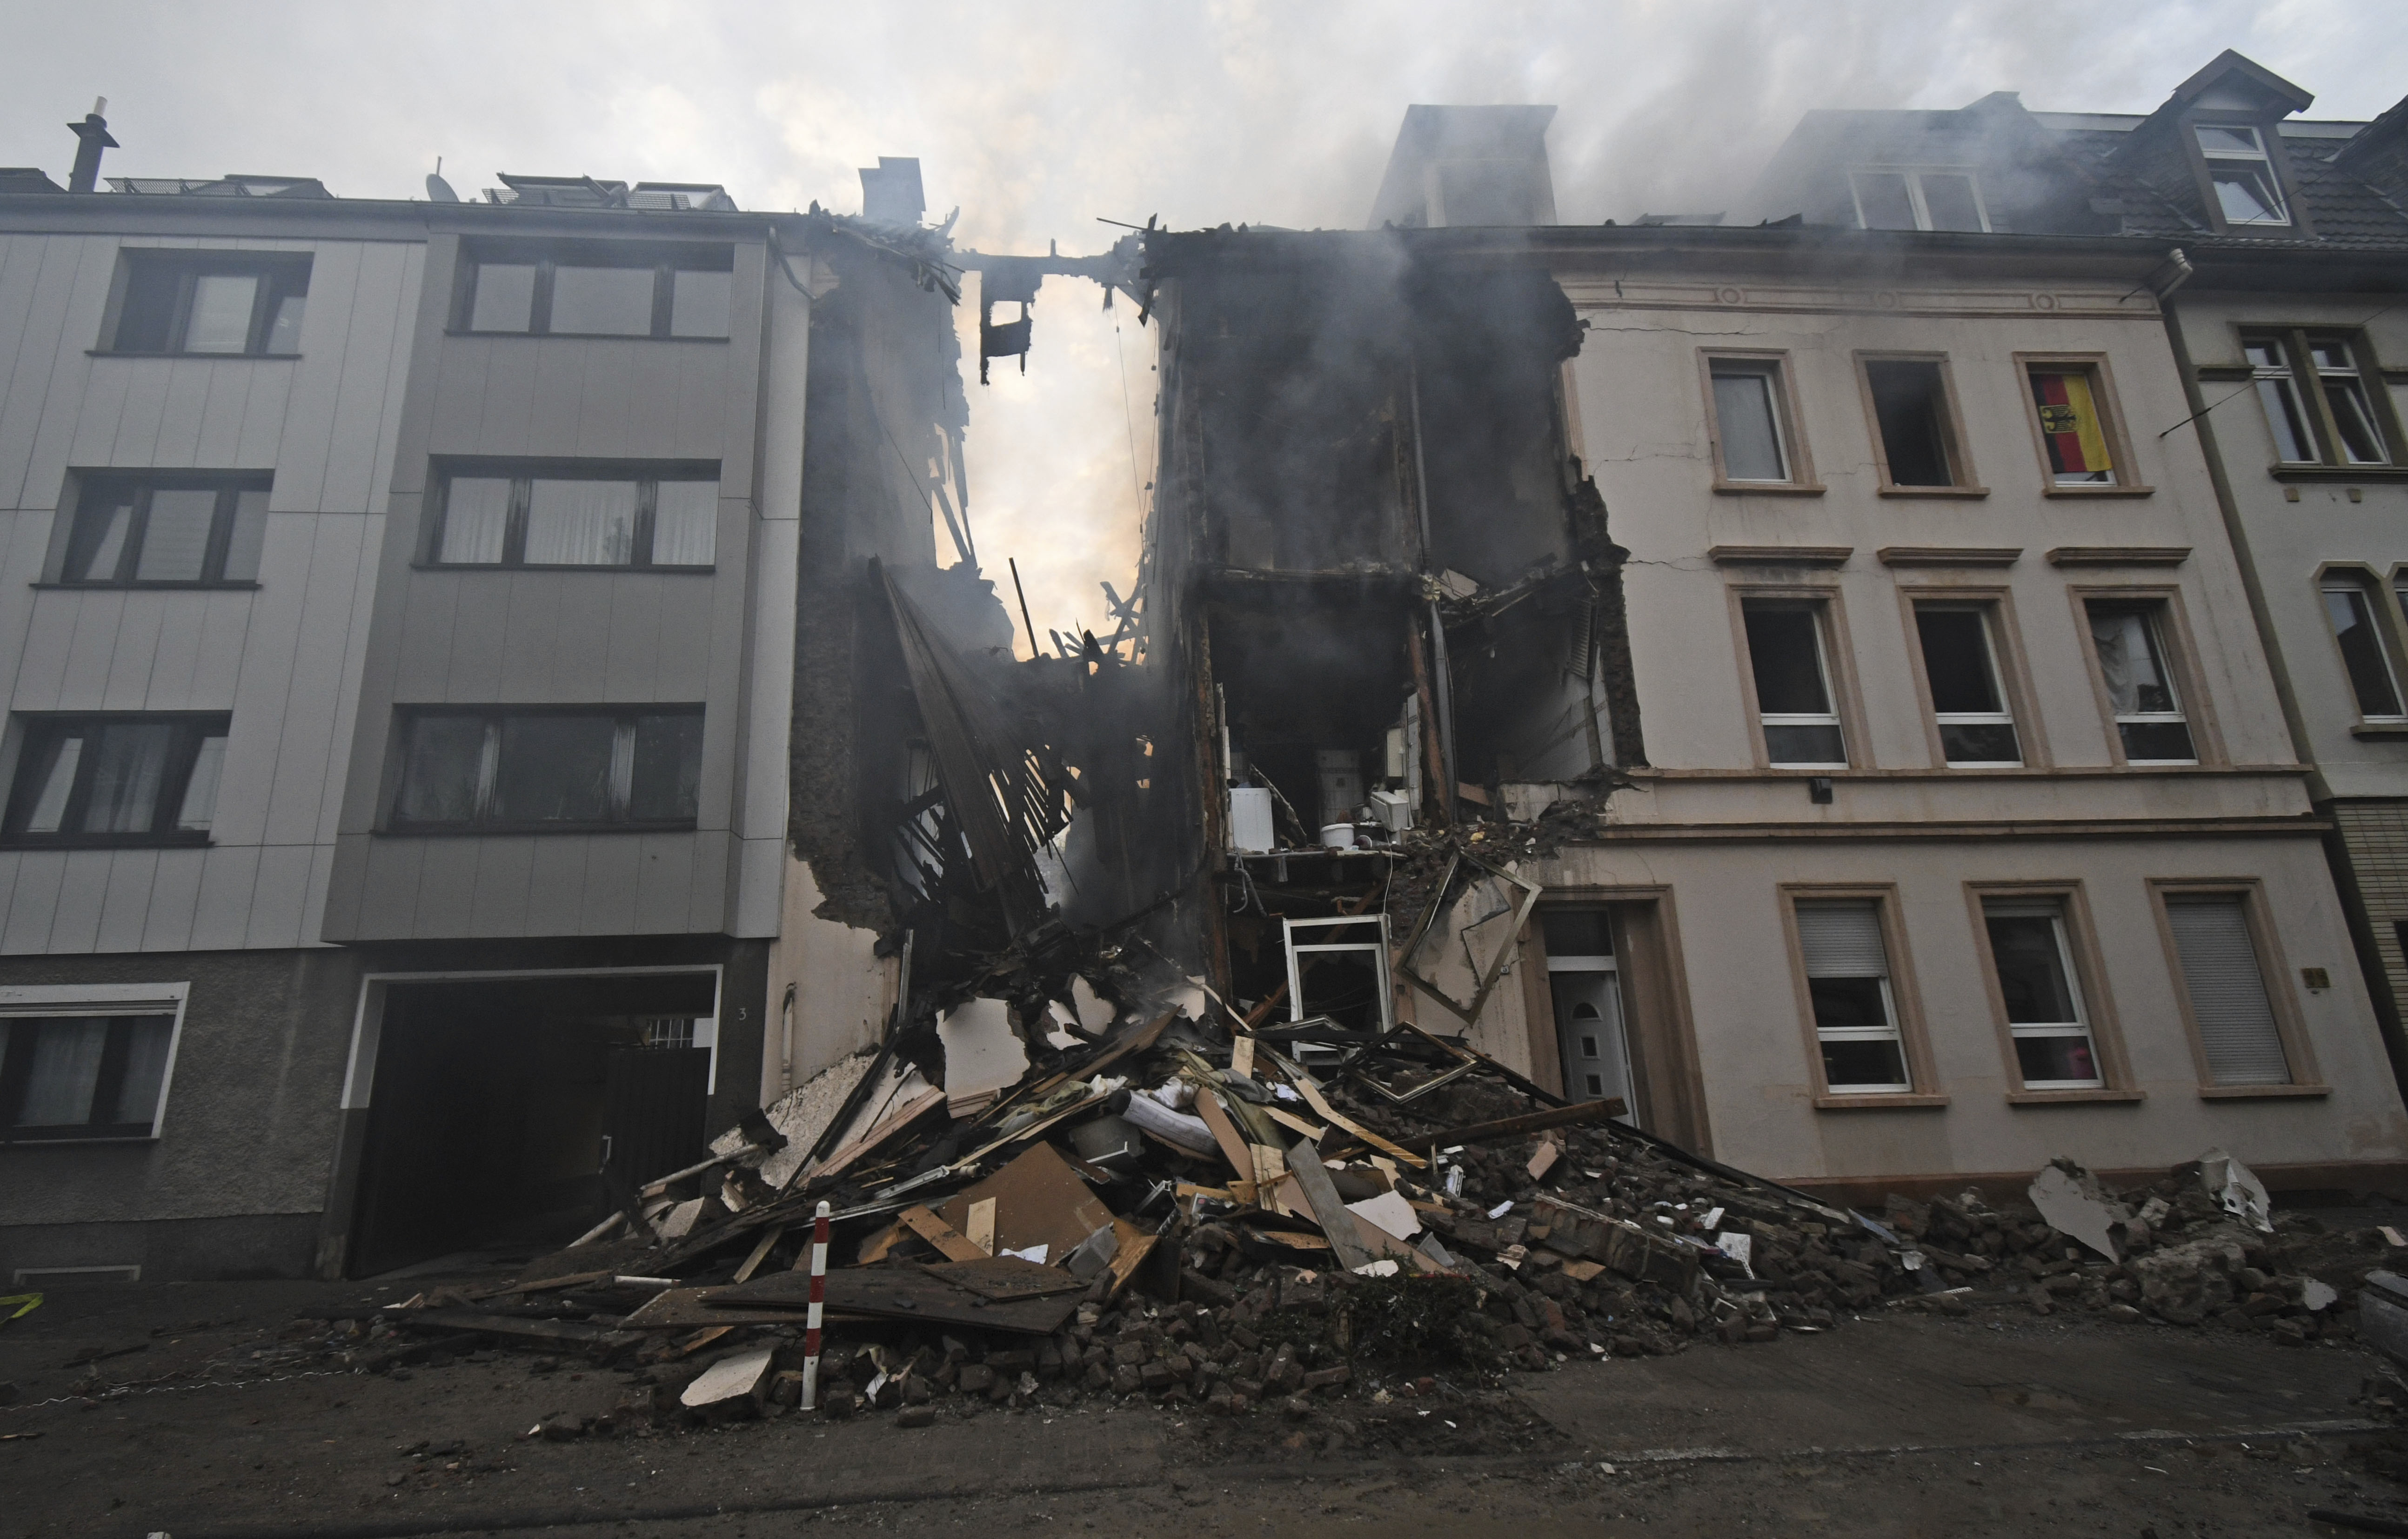 A house is destroyed after an explosion in Wuppertal, Germany, June 24, 2018. German police say 25 people were injured, when an explosion destroyed a several-store building in the western city of Wuppertal. (Henning Kaiser/dpa via AP)